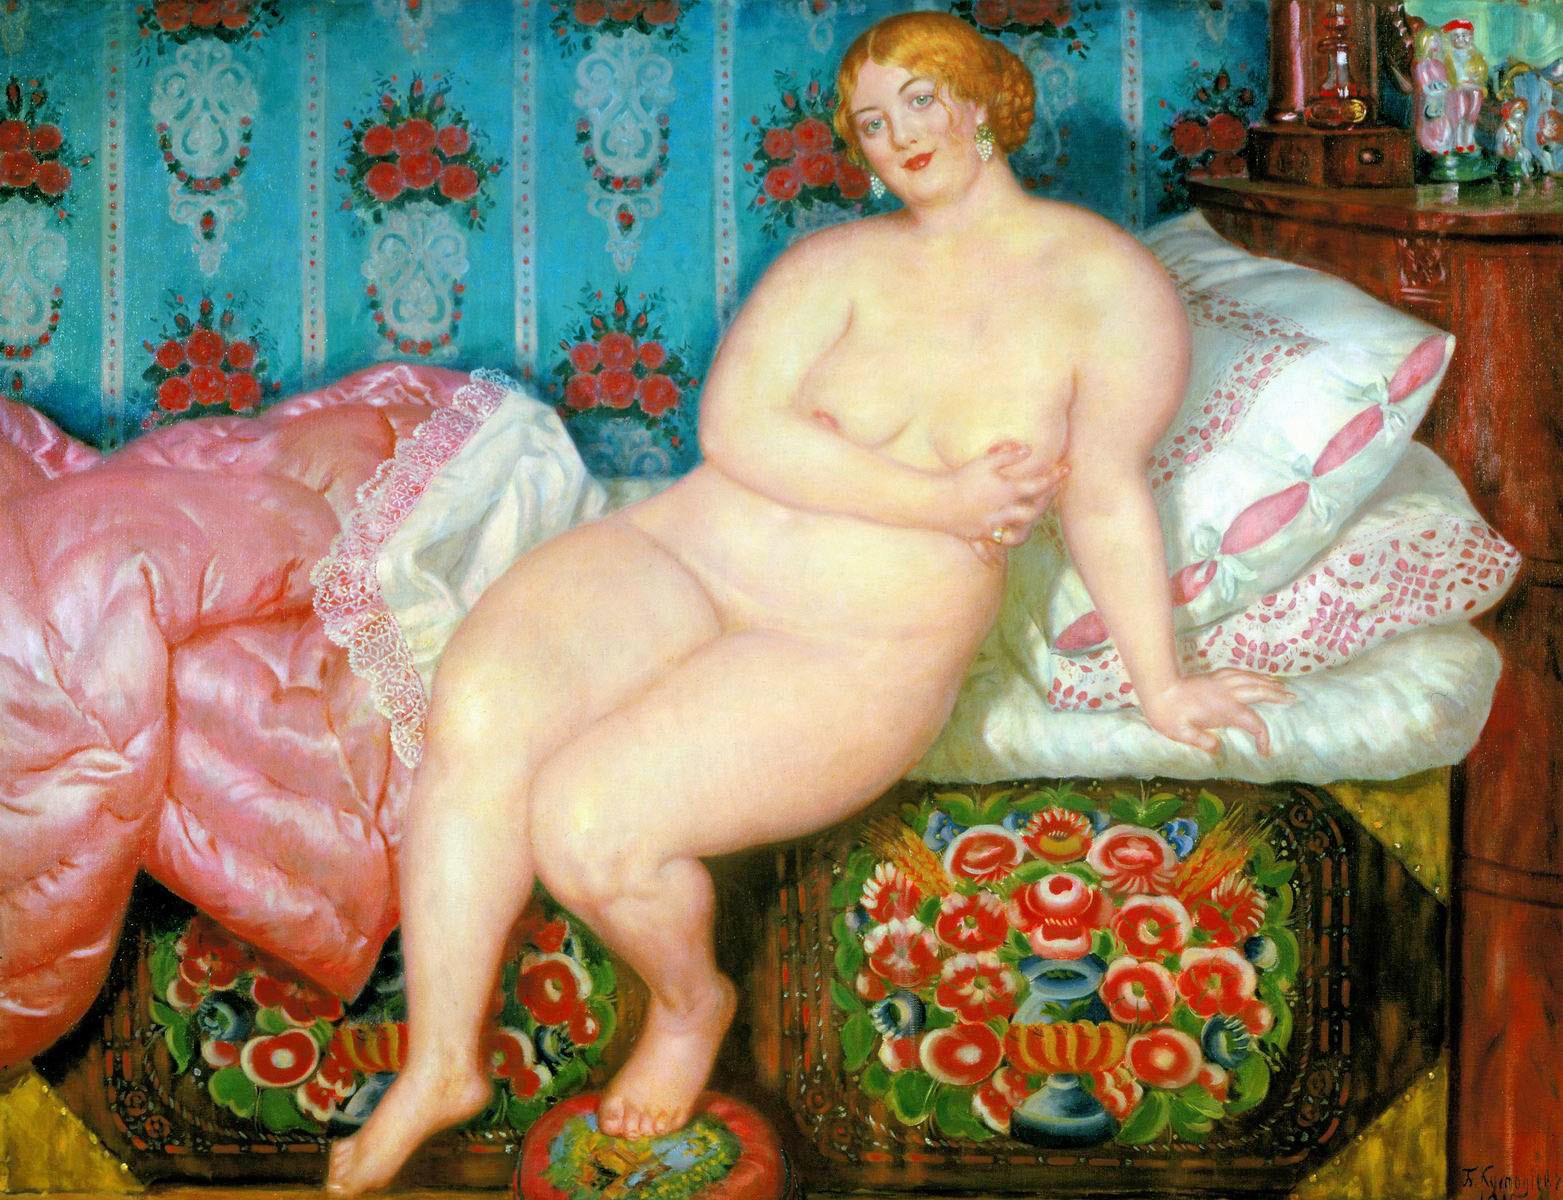 http://uploads6.wikipaintings.org/images/boris-kustodiev/beauty-1915.jpg